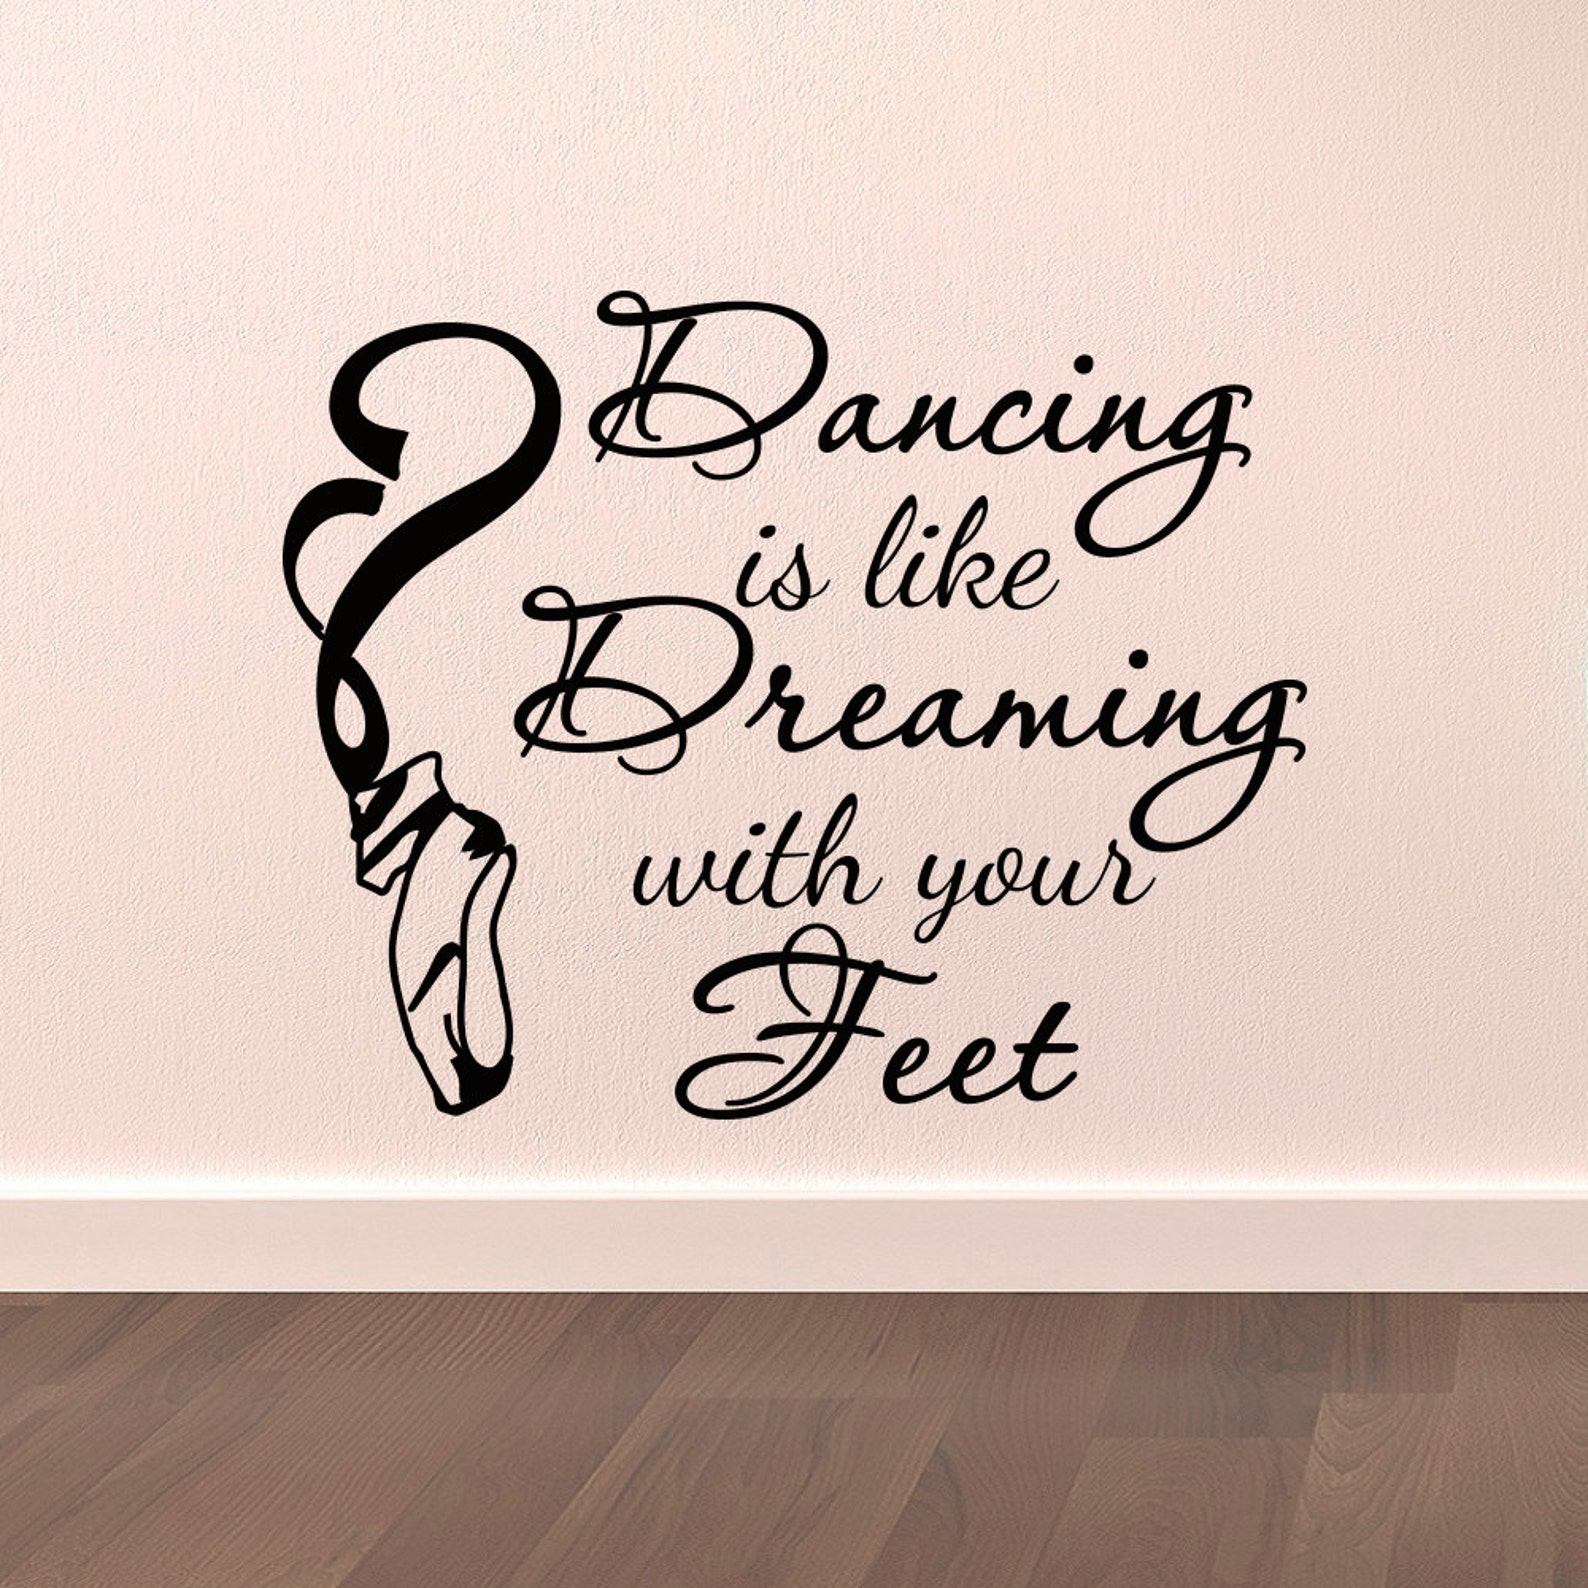 dance wall decal stickers dancing is like dreaming with your feet quotes dancer ballerina ballet pointe shoes wall art vinyl let